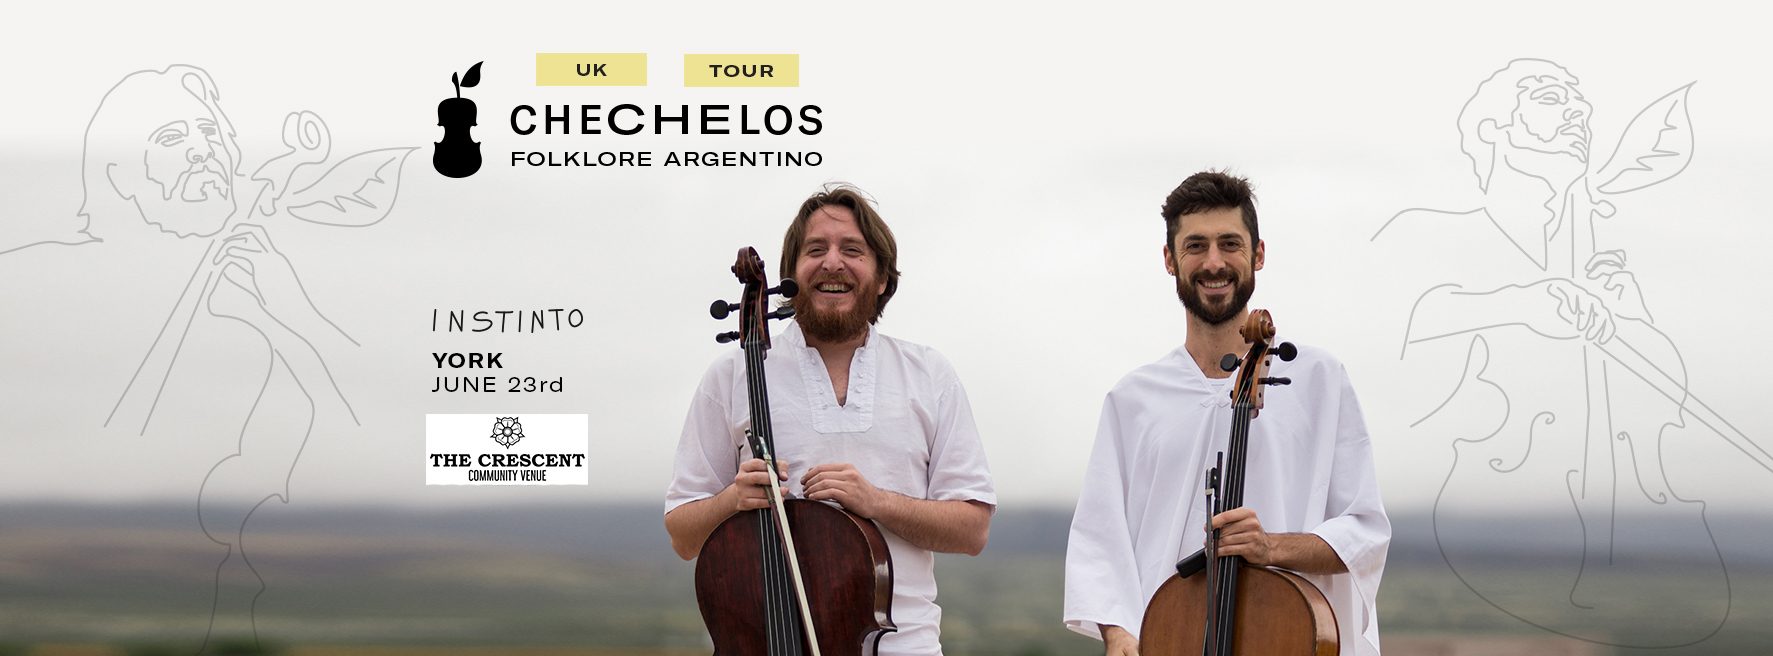 Chechelos at The Crescent - York